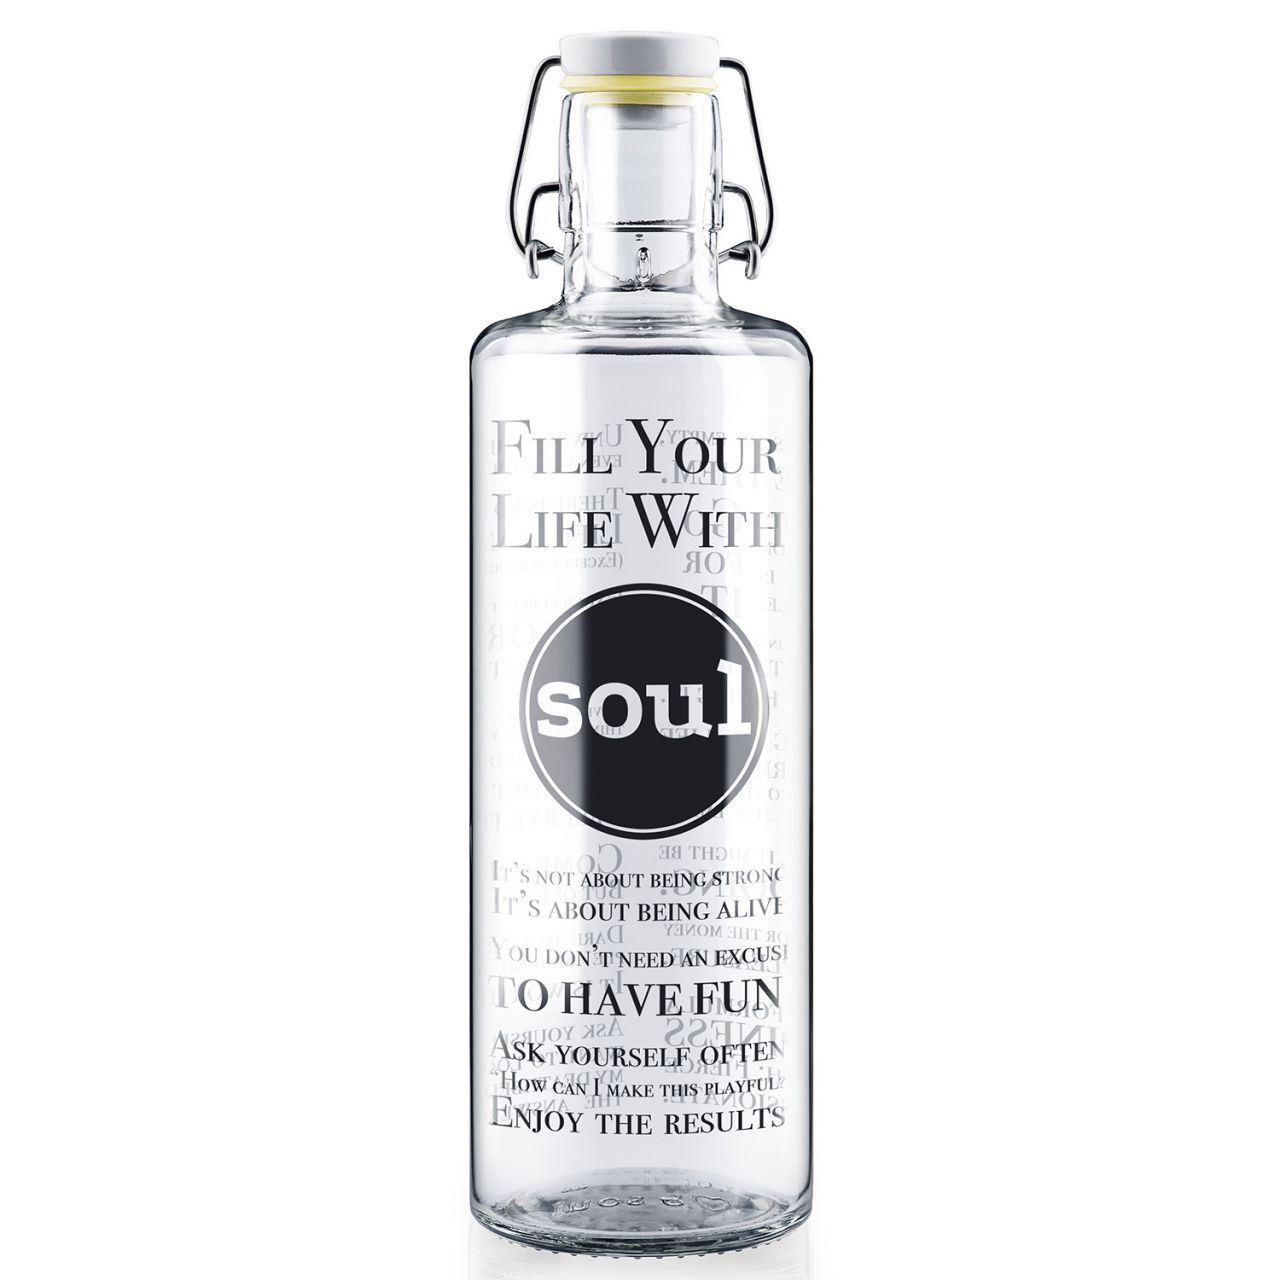 soulbottles - Fill your Life with soul Glastrinkflasche SB10-01